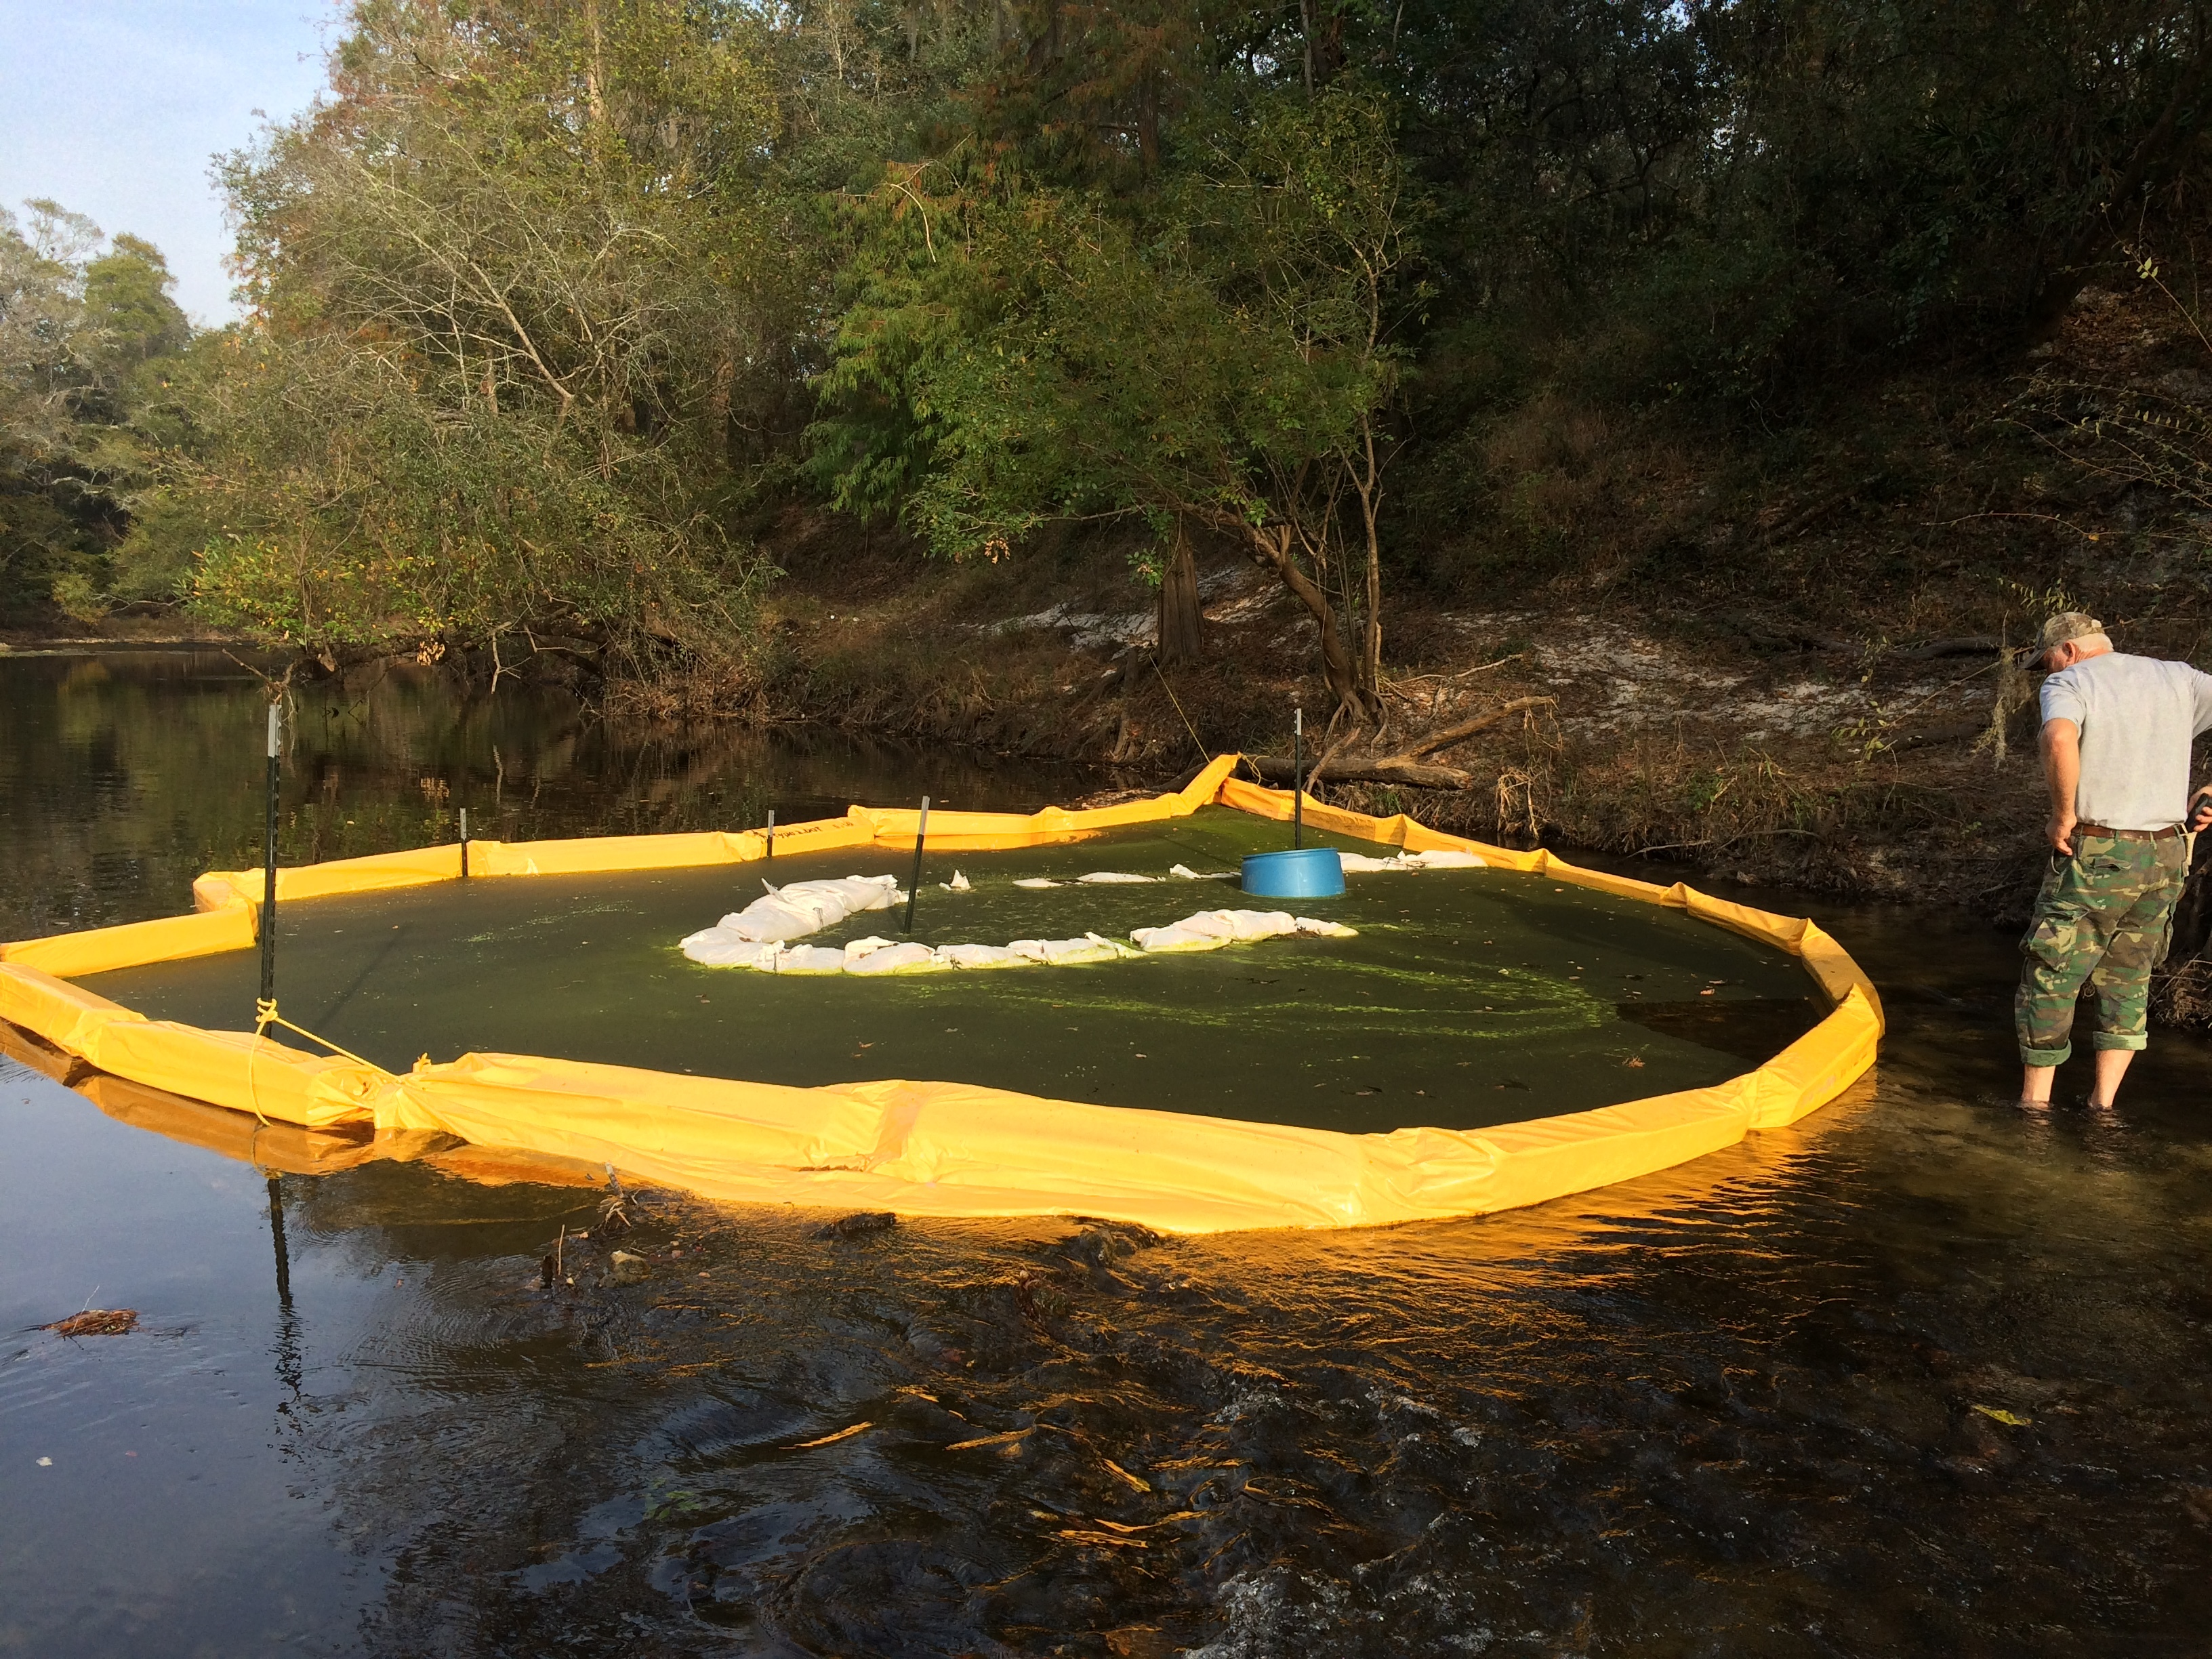 3264x2448 Turbidity curtains with human for scale (Chris Mericle), in Sabal Trail still leaking drilling mud into the Withlacoochee River in GA, by Deanna Mericle, 12 November 2016